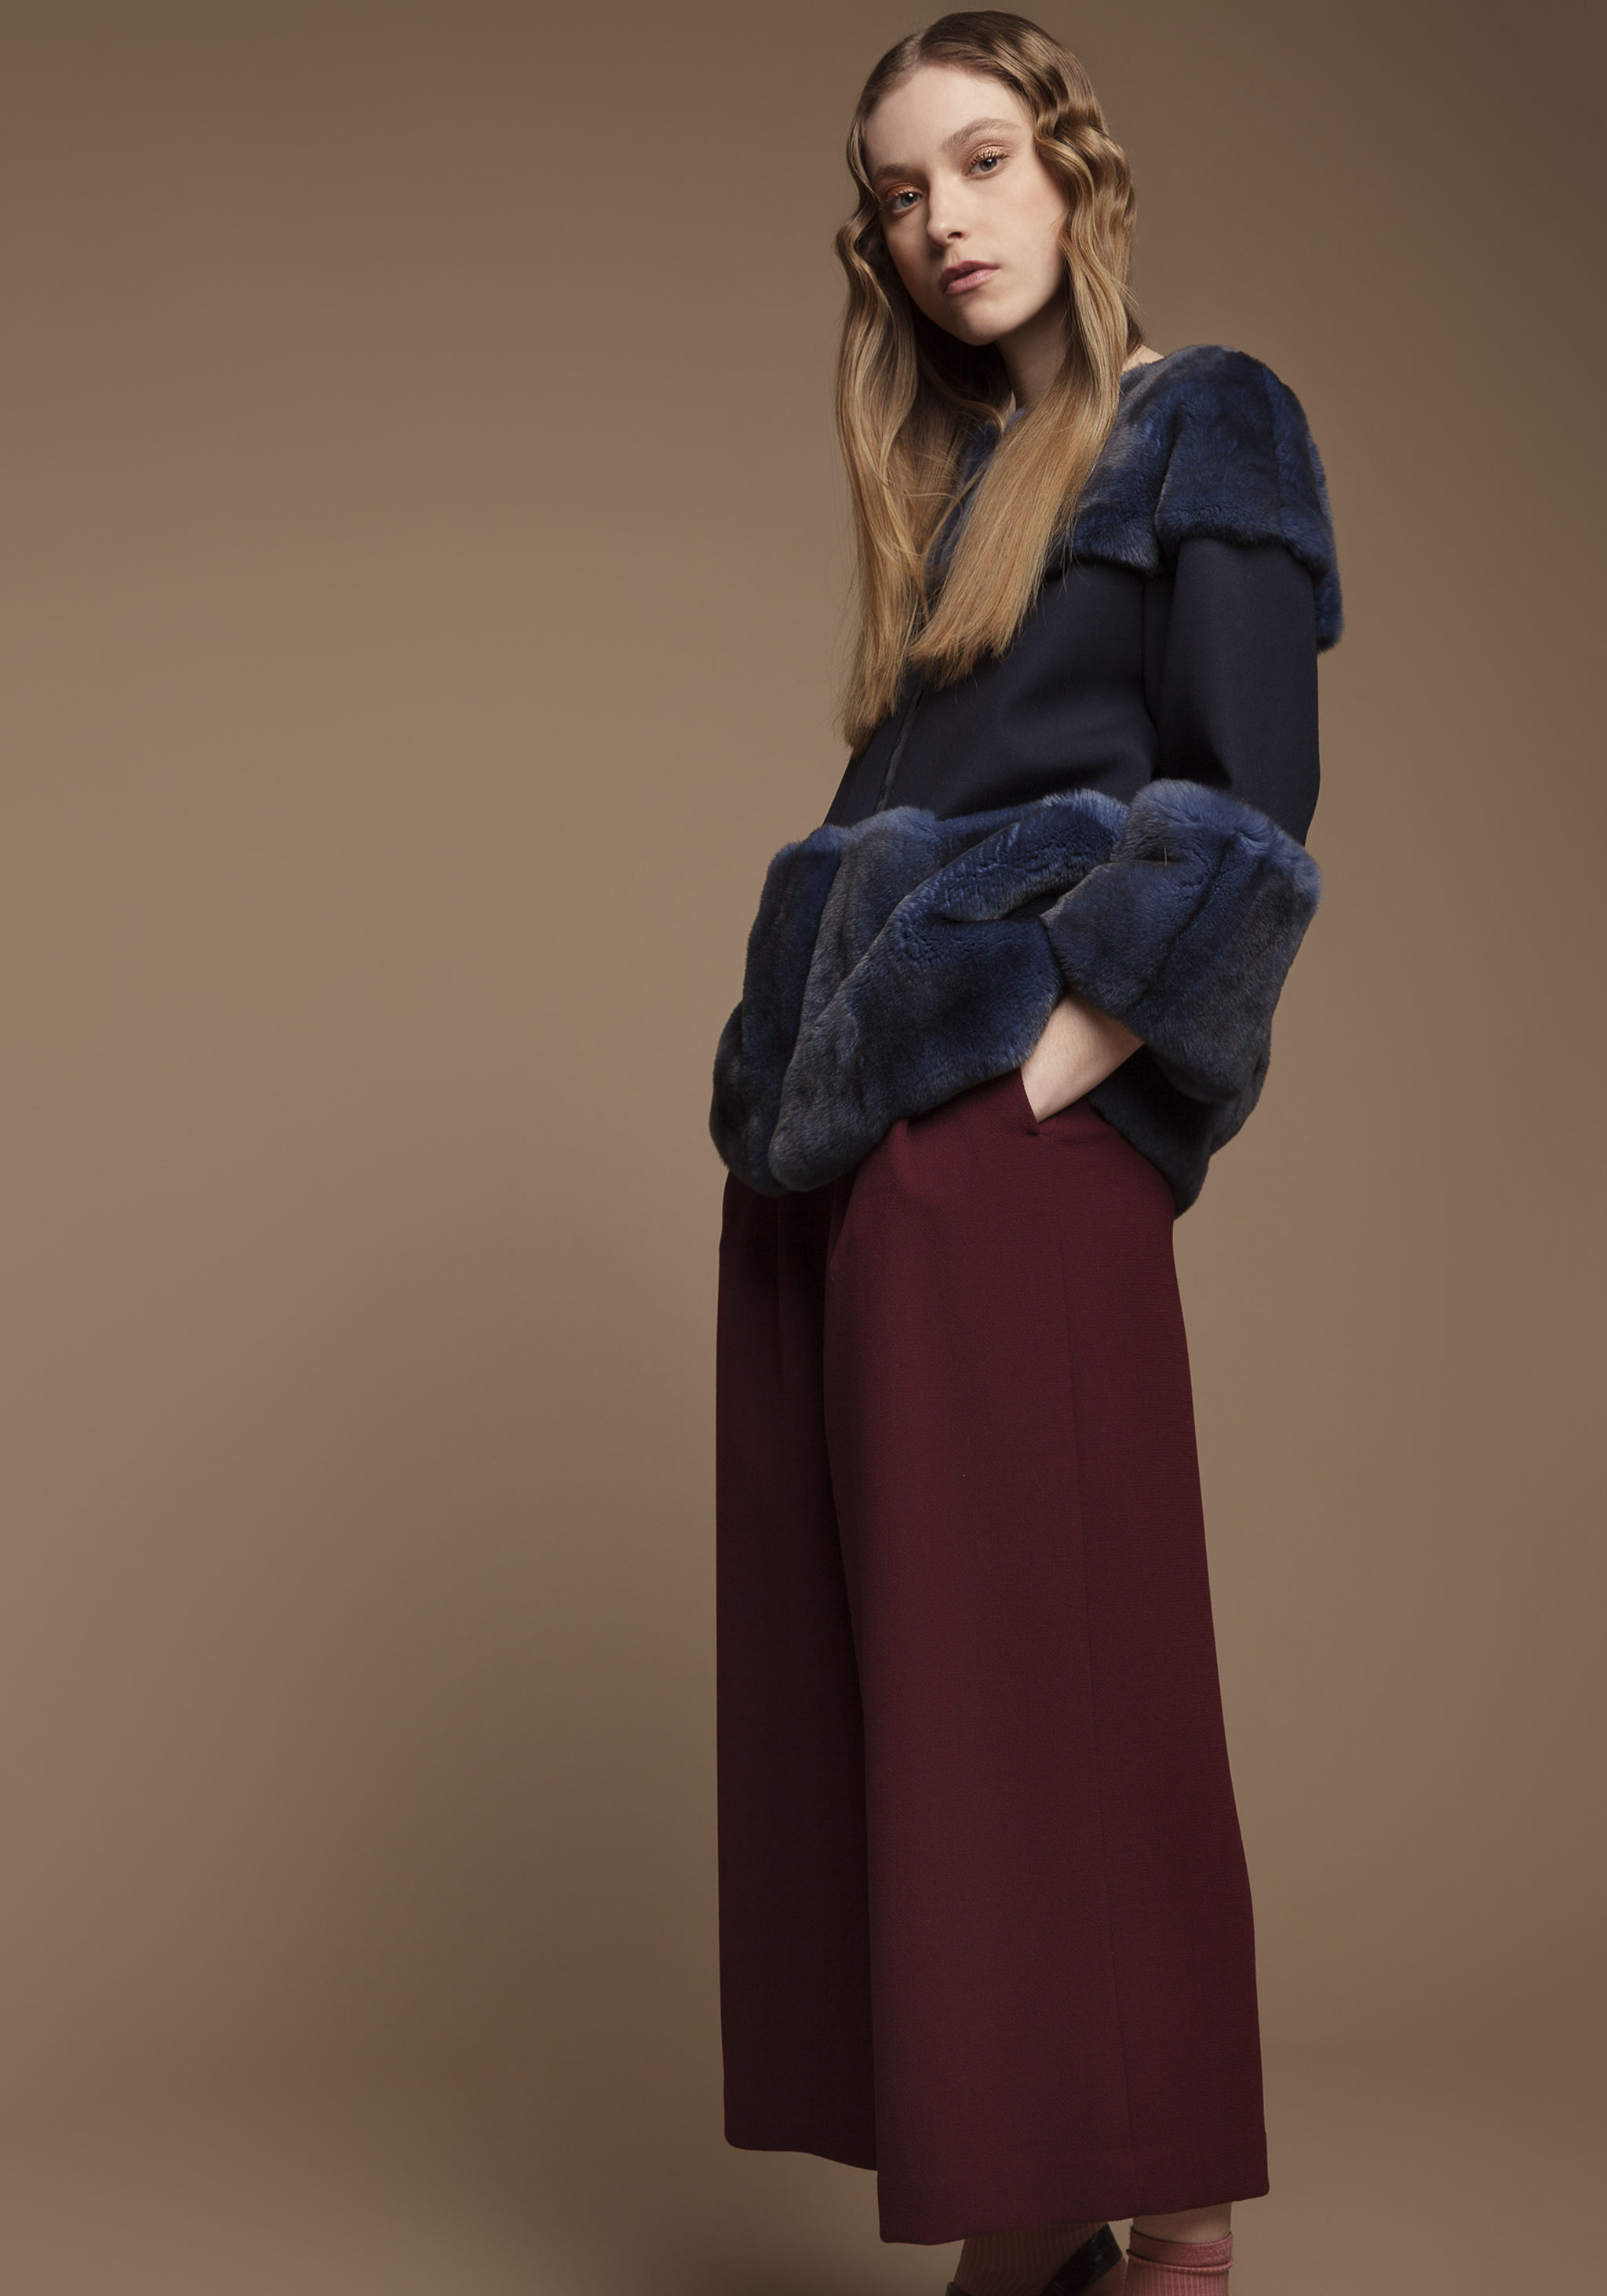 martacucciniello fallwinter-17/18 look19